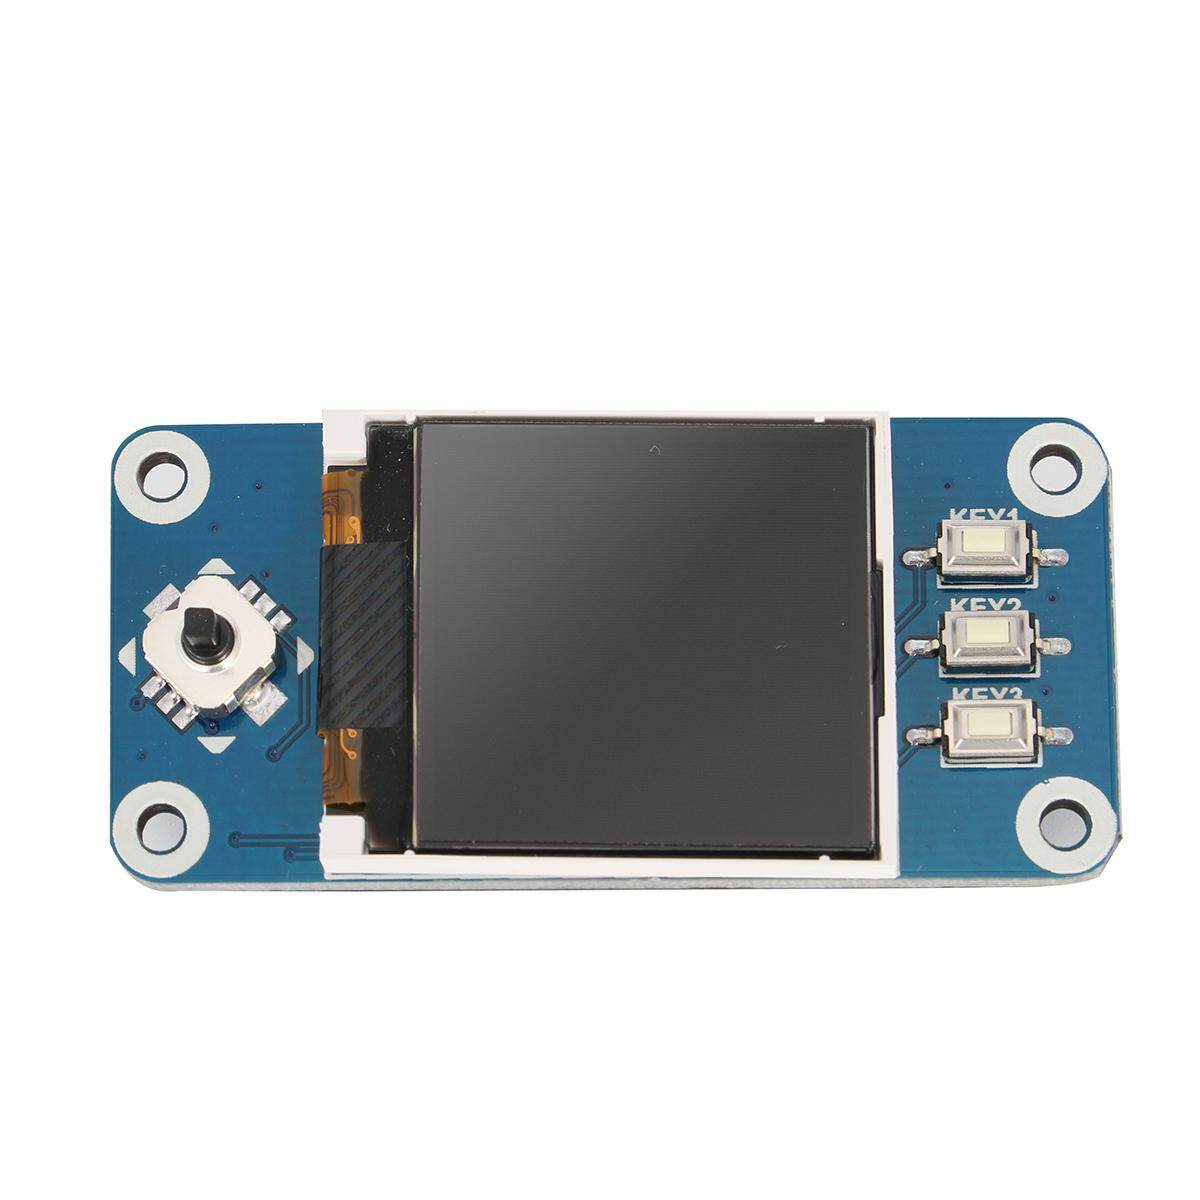 128x128 1.44inch LCD display HAT SPI for Raspberry Pi 2B/3B/Zero/Zero W